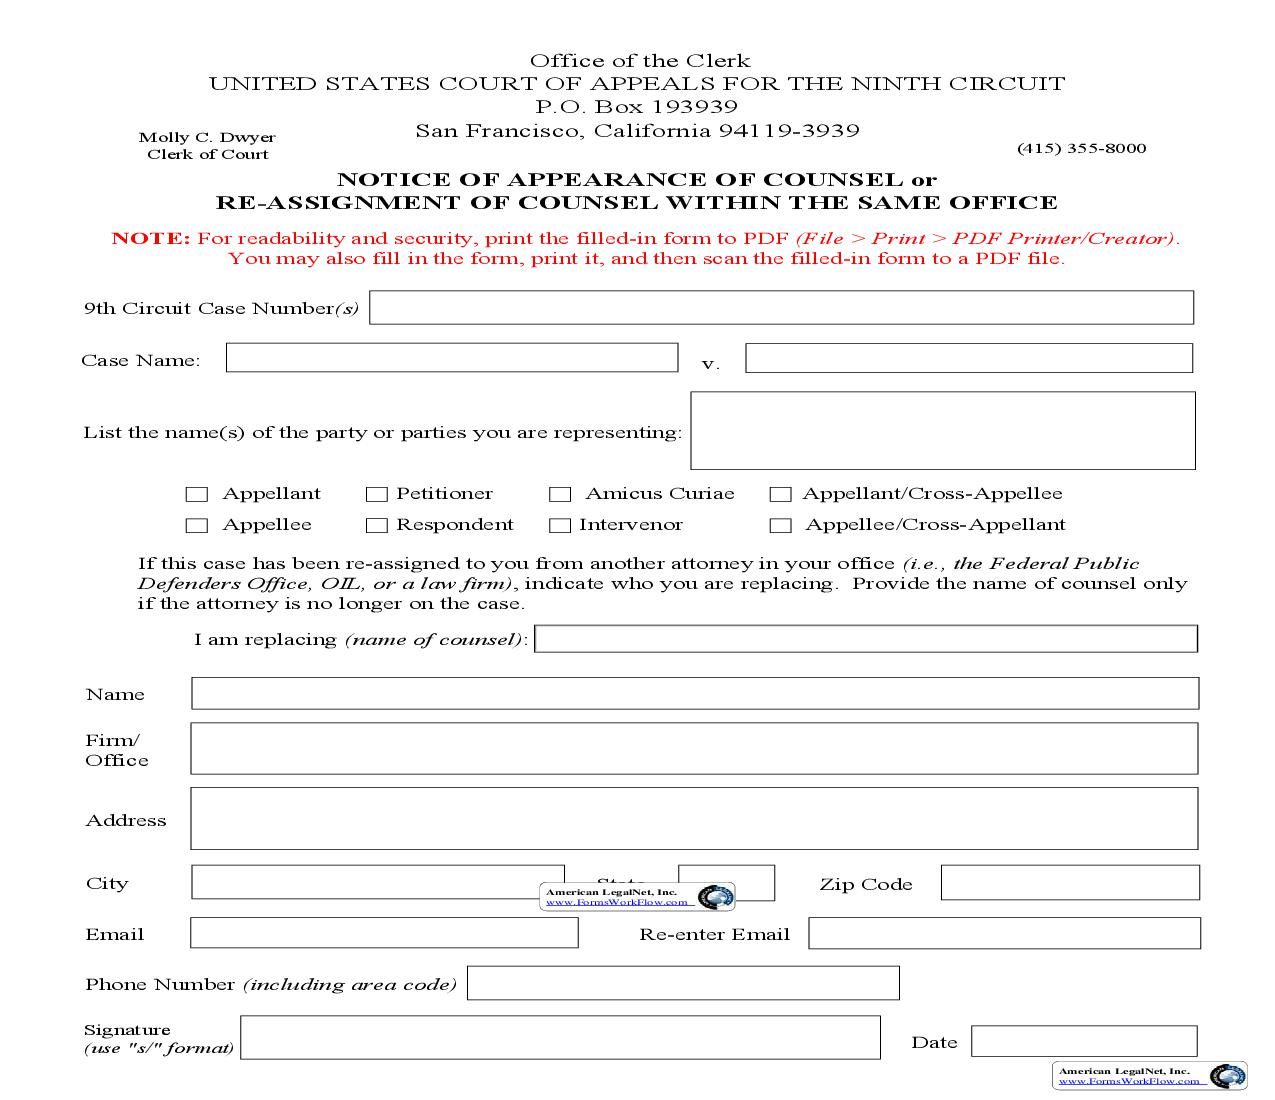 Notice Of Appearance Of Counsel Or Re-Assignment Of Counsel   Pdf Fpdf Doc Docx   Official Federal Forms